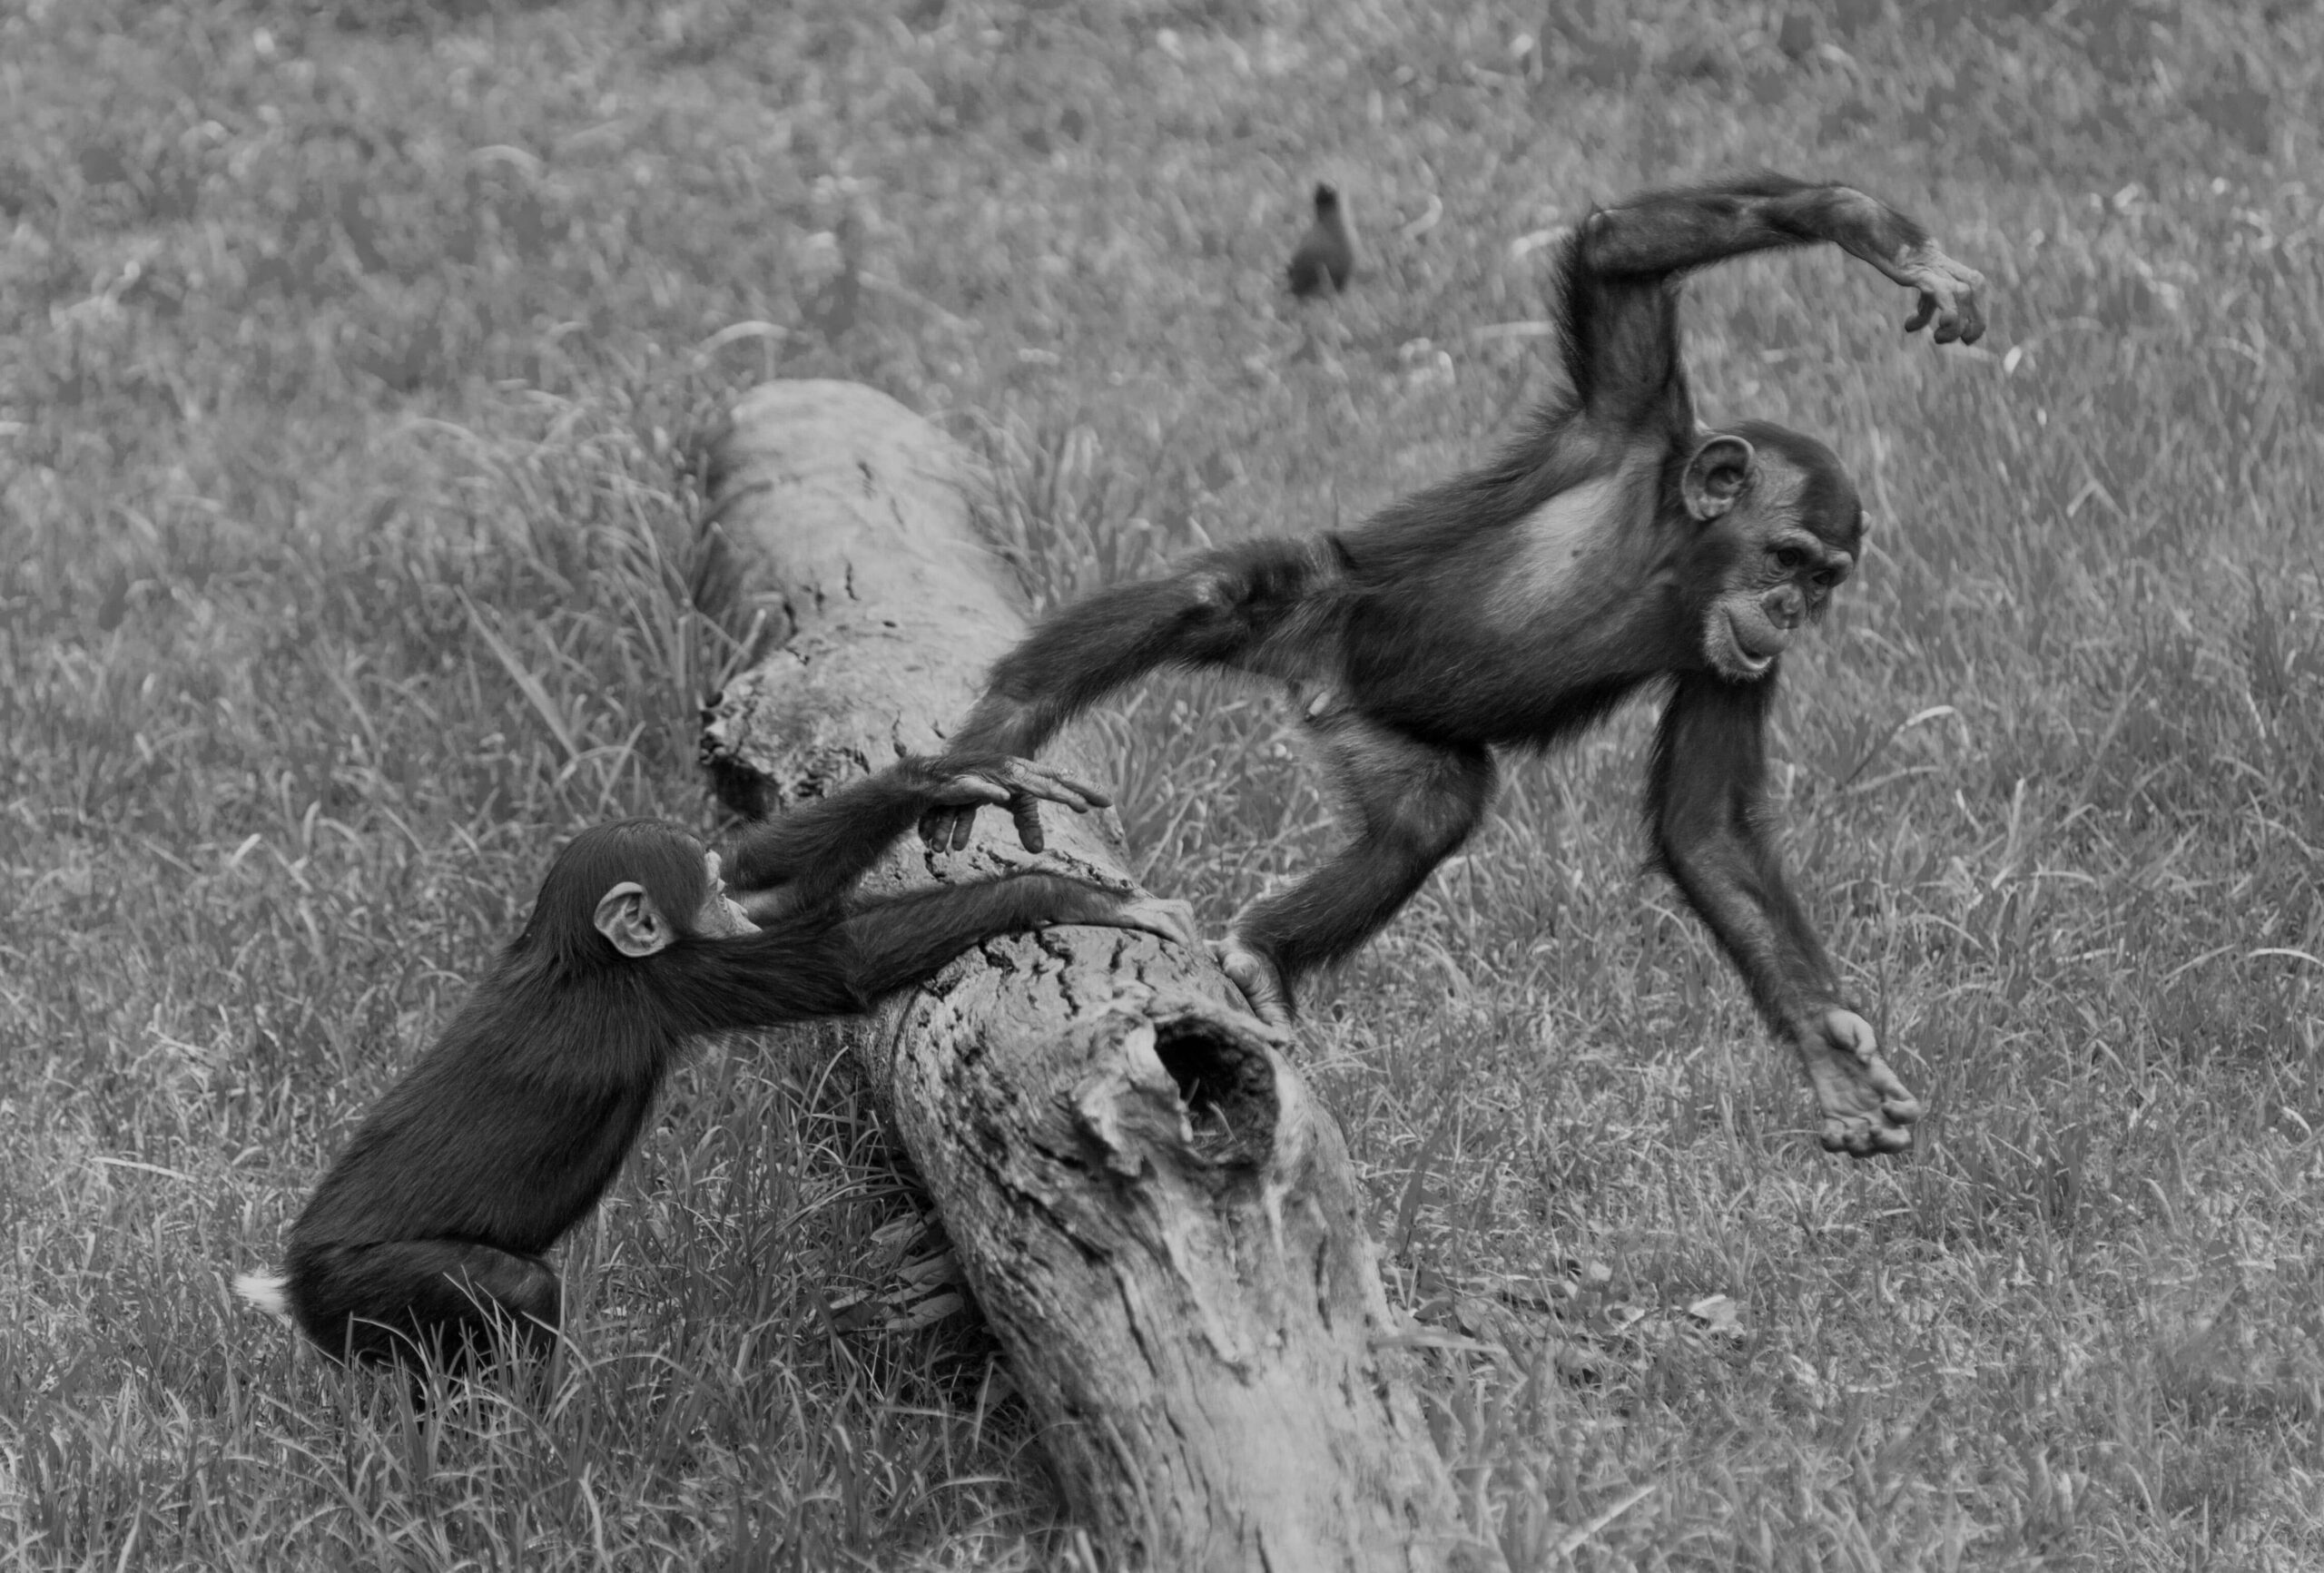 Black and white image of juvenile chimpanzees